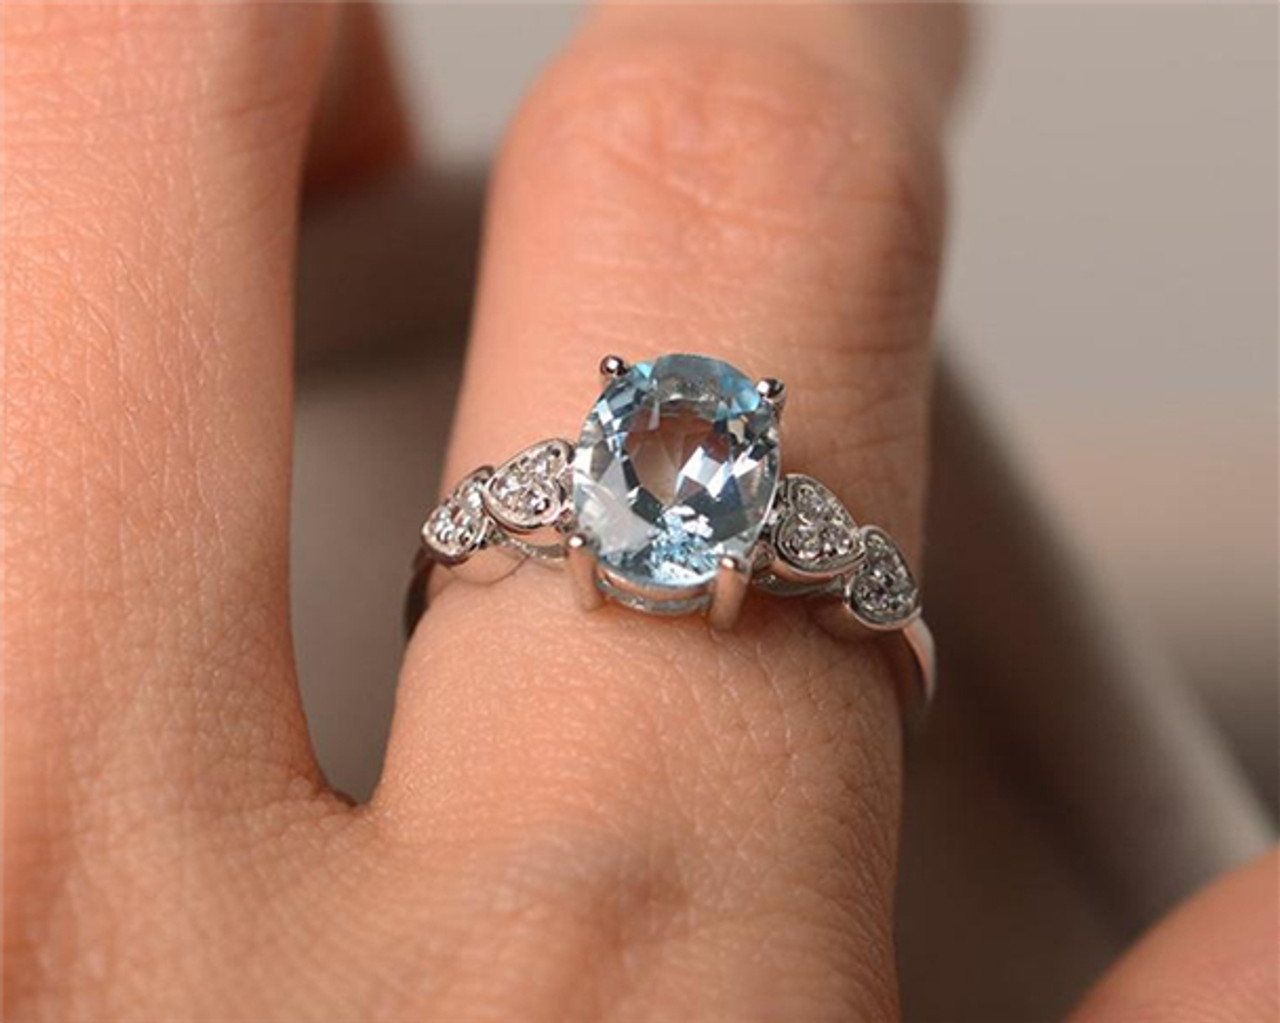 Aquamarine Ring Promise Ring- March Birthstone-Women Ring Gift Item Oval Aquamarine Engagement Ring Sterling Silver Ring